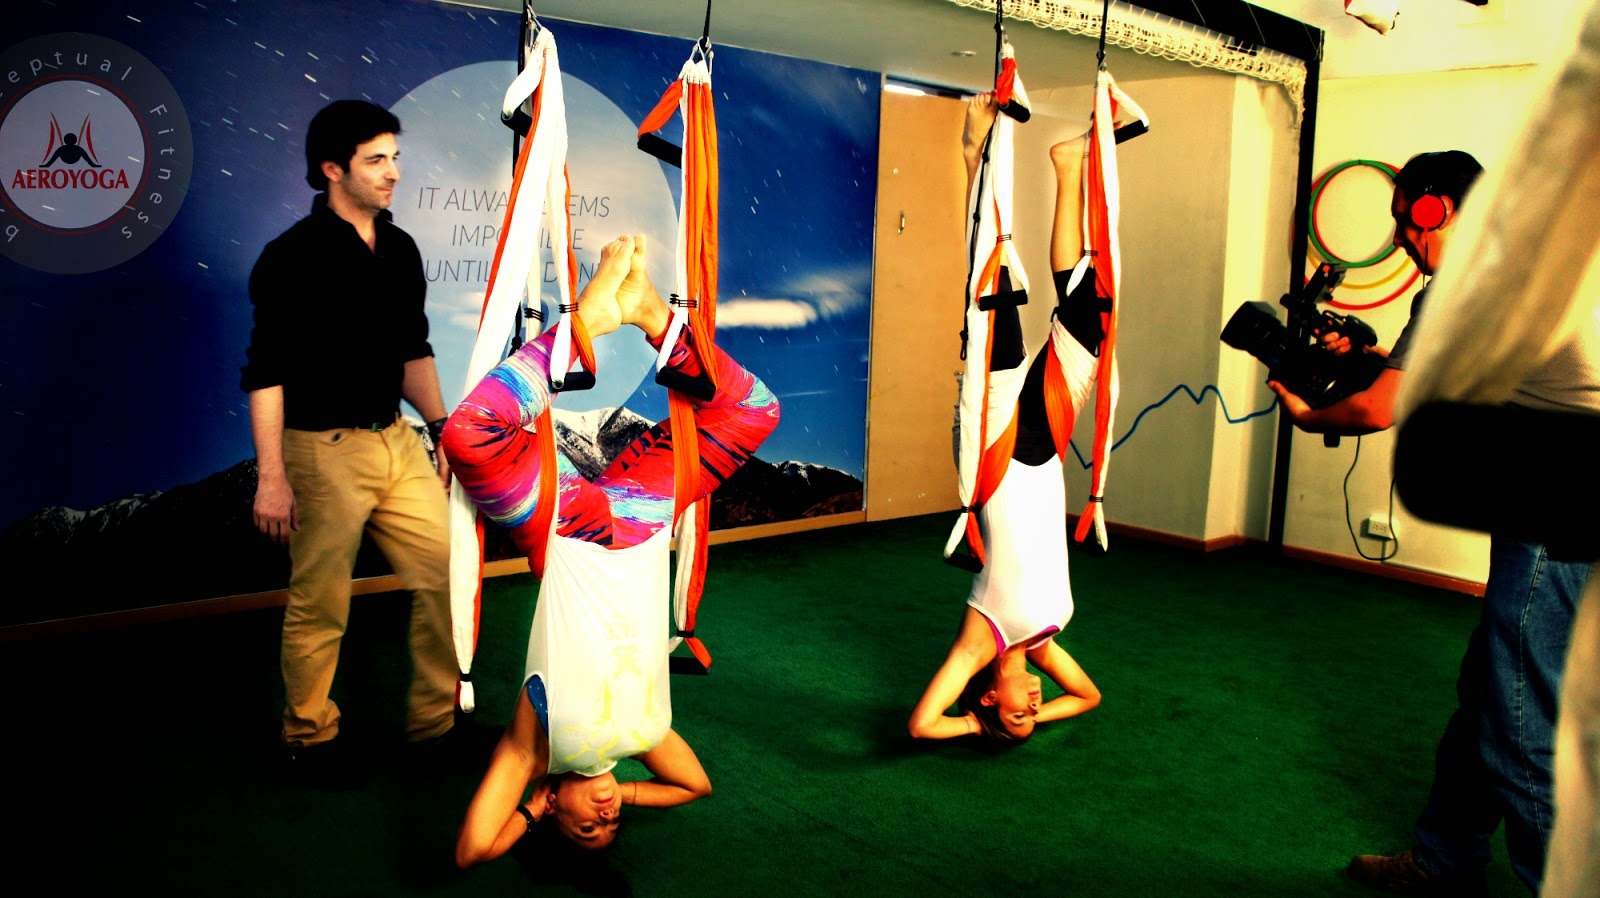 RAFAEL MARTINEZ: AERIAL YOGA TV PRESS HEALTH BEAUTY WELLNESS